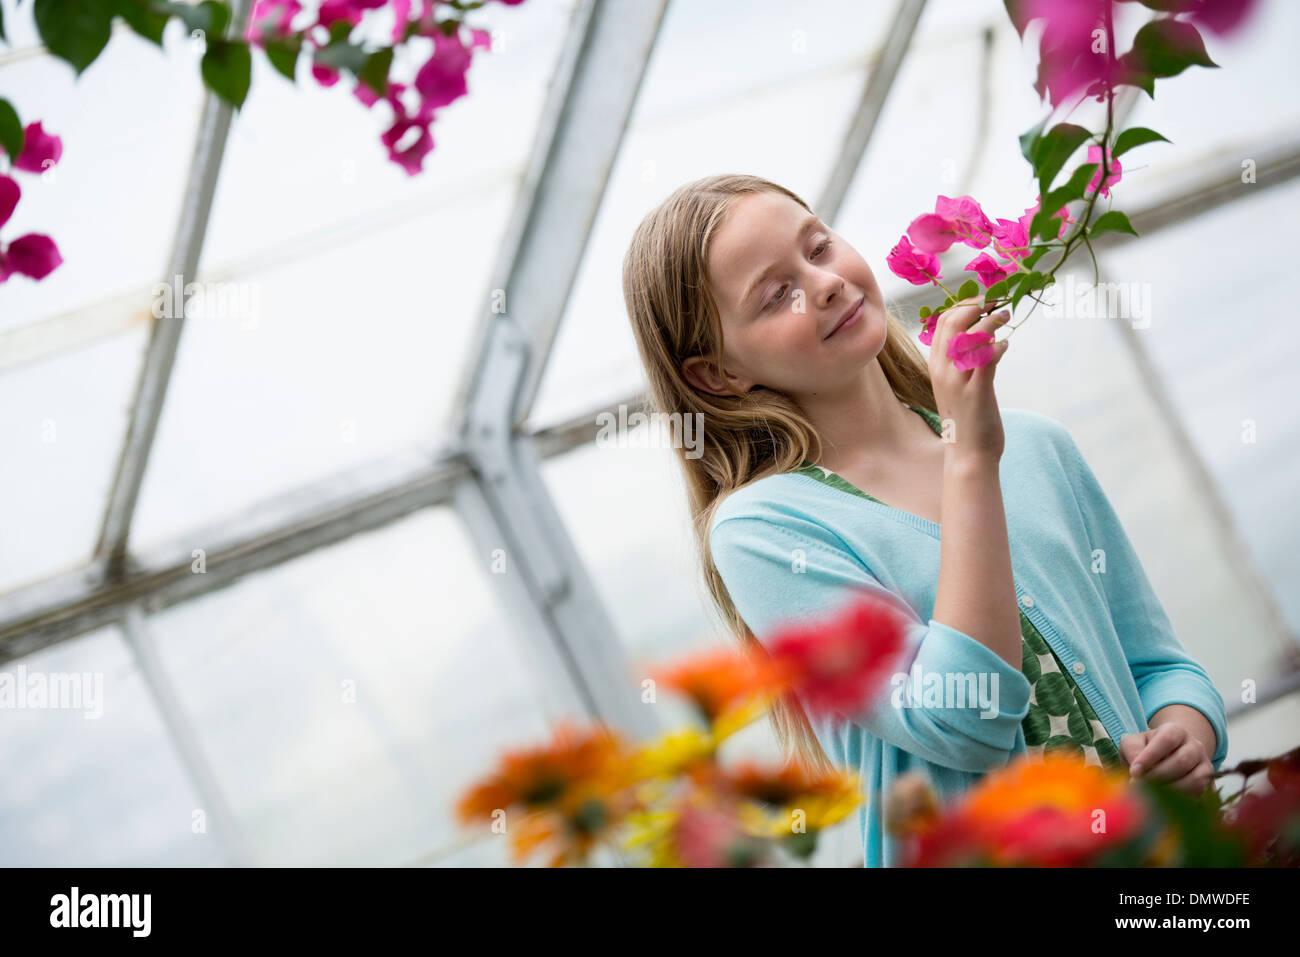 An organic flower plant nursery. A young girl looking at  flowers. Stock Photo